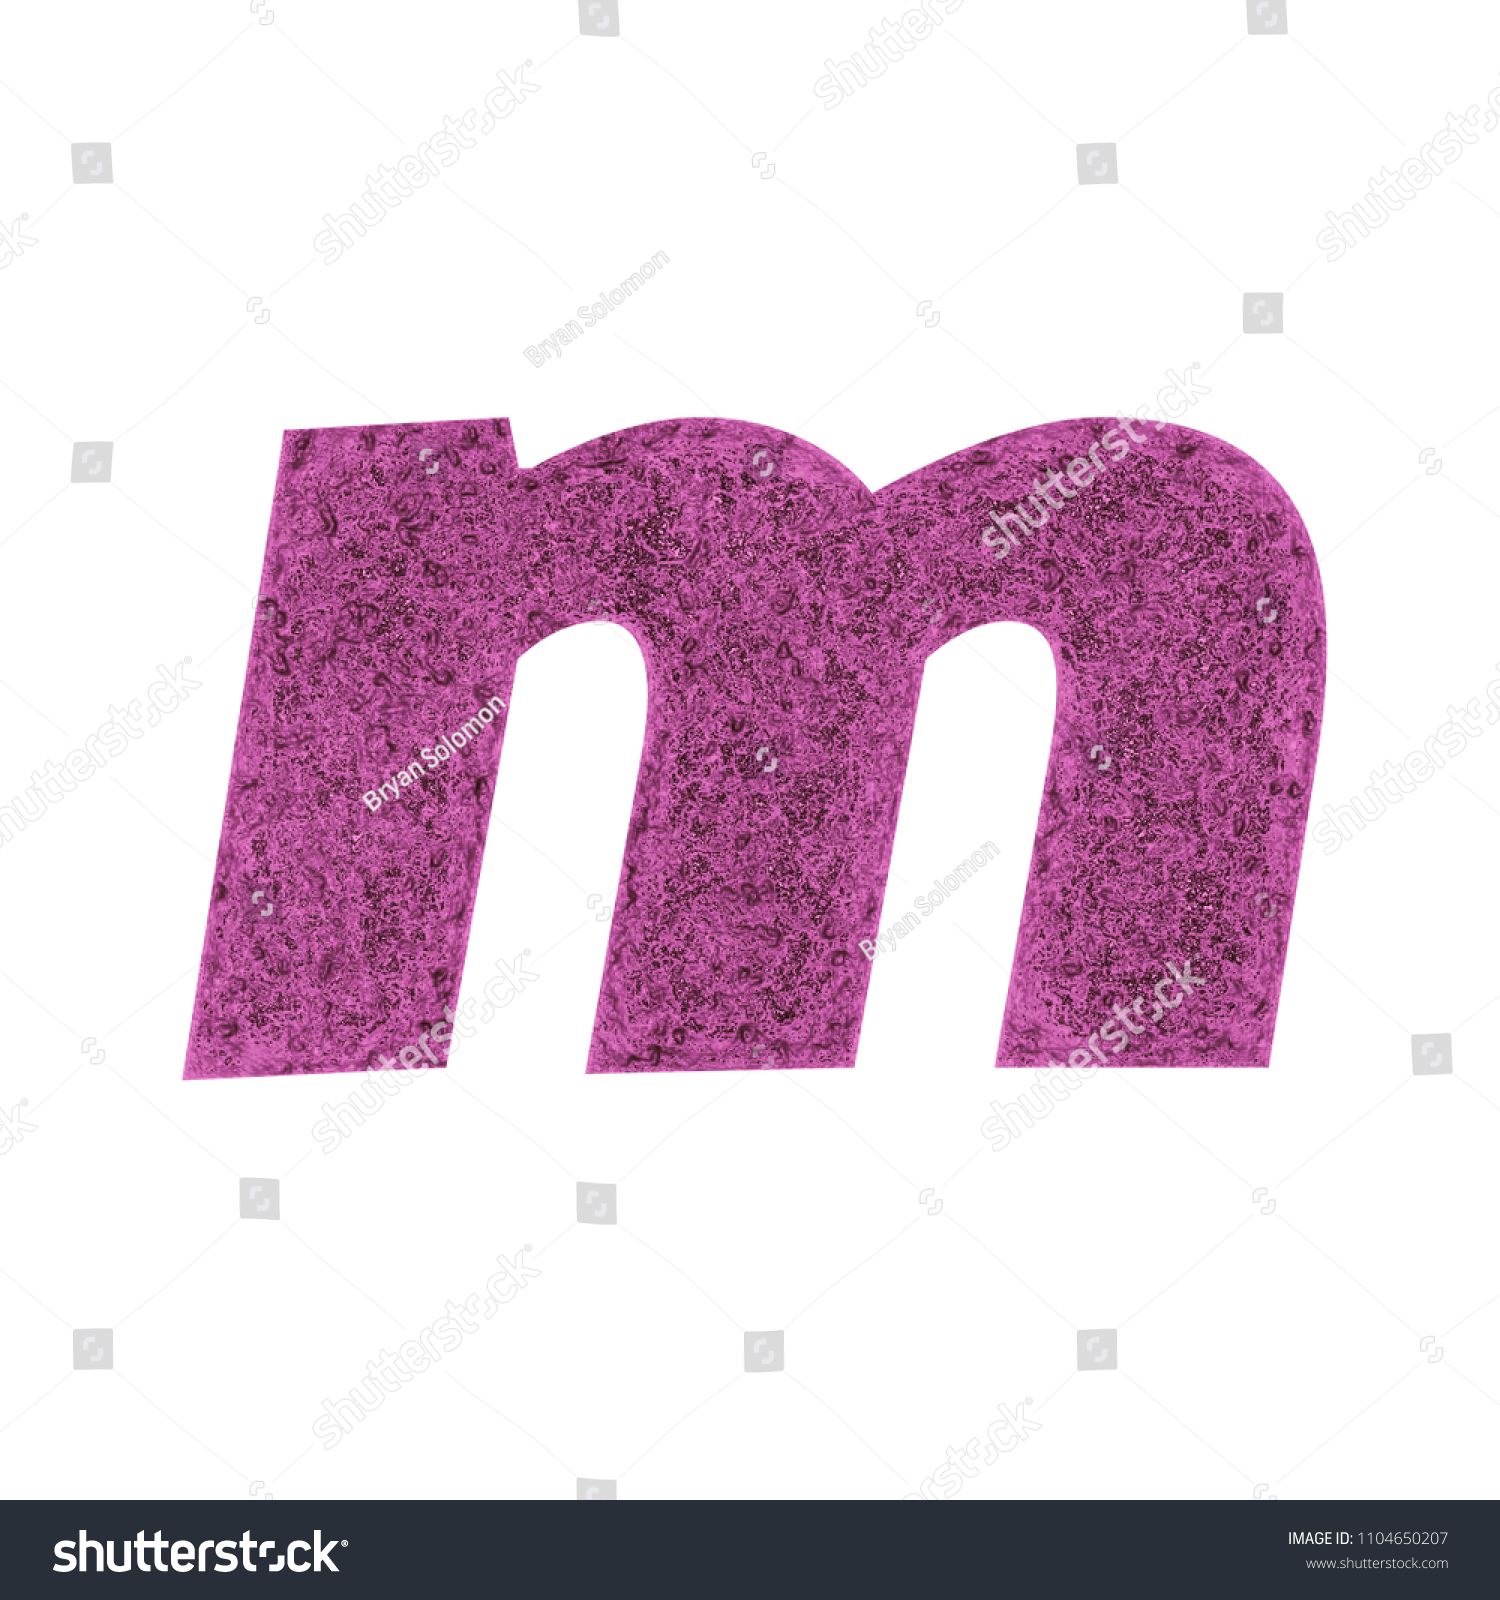 Distressed Pink Metal Letter M Lowercase Stock Illustration ...